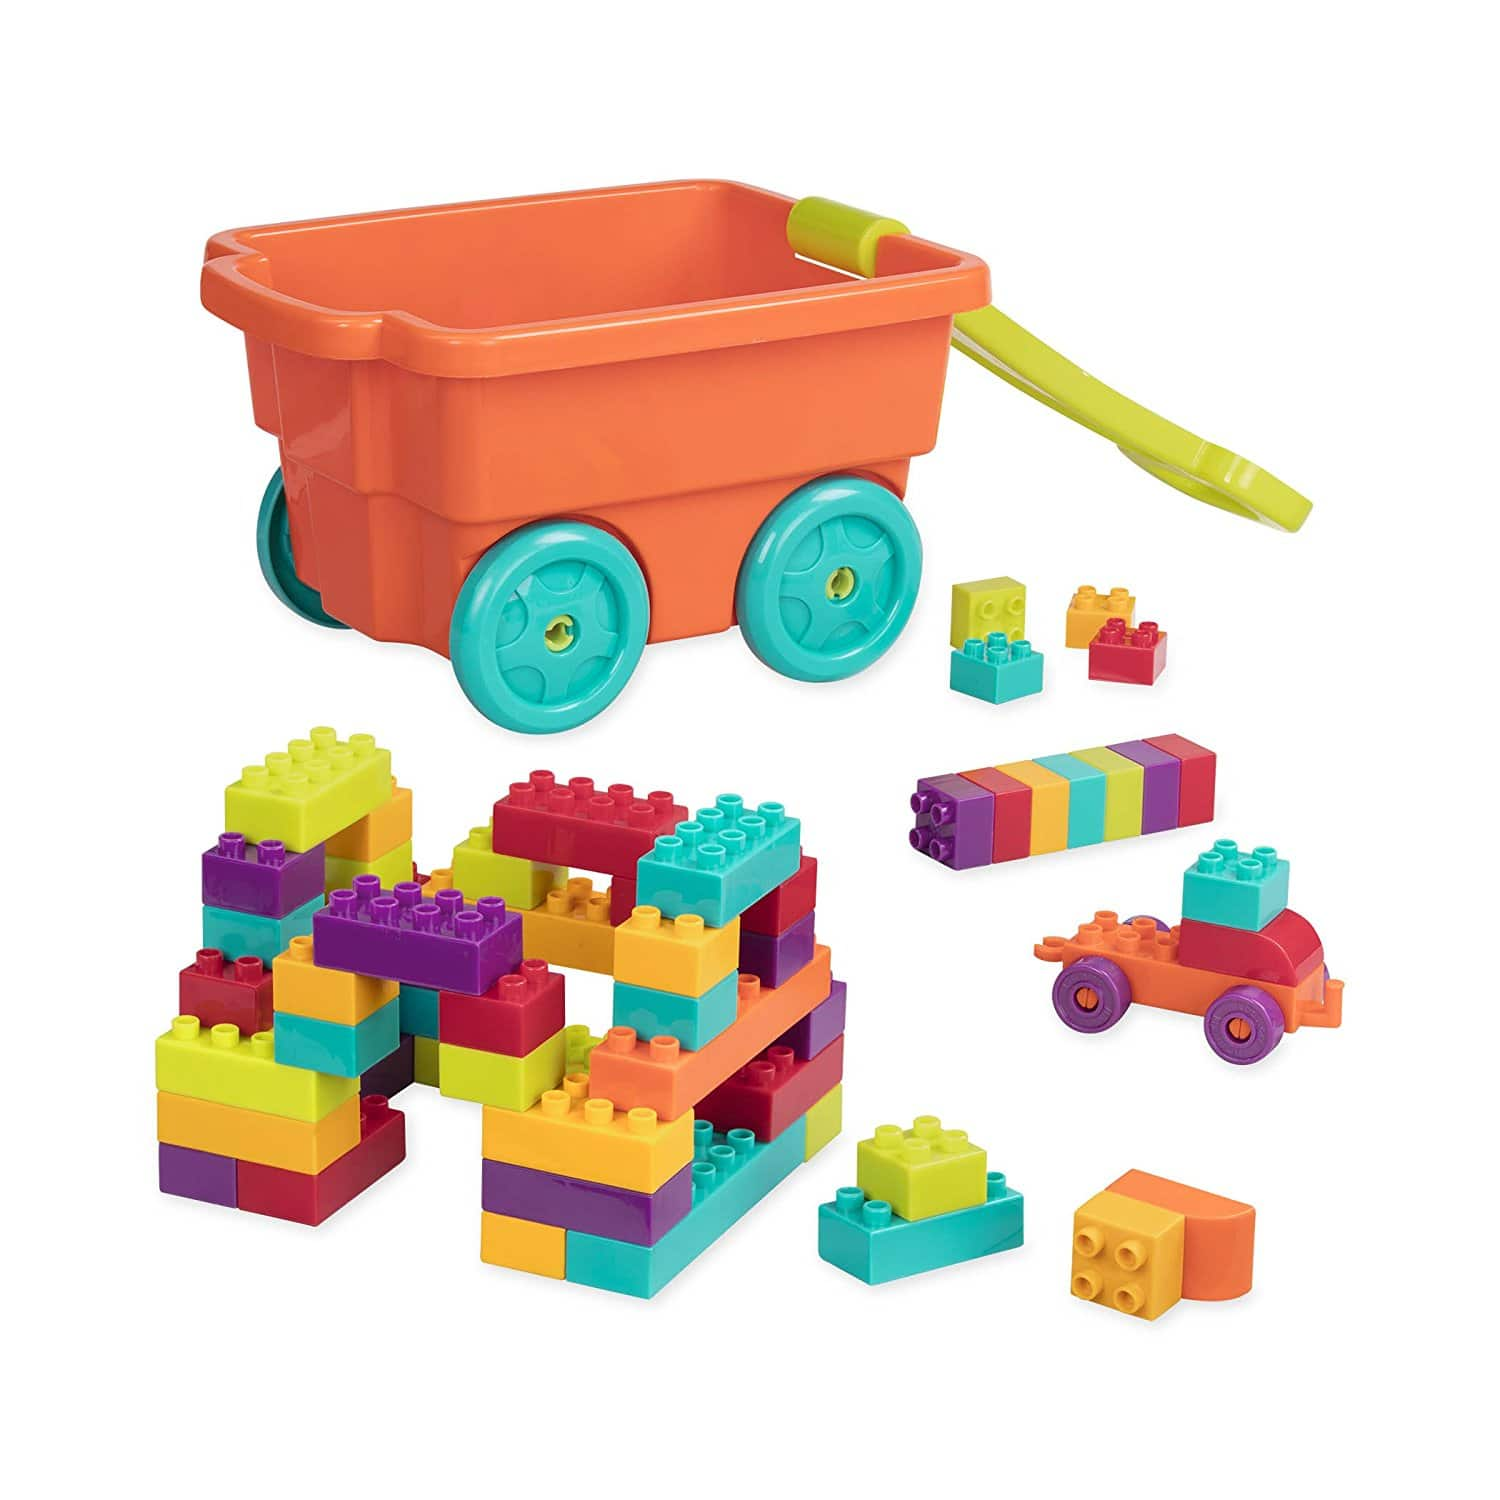 Battat Locbloc Wagon Building Toy Blocks for Toddlers 54 pieces